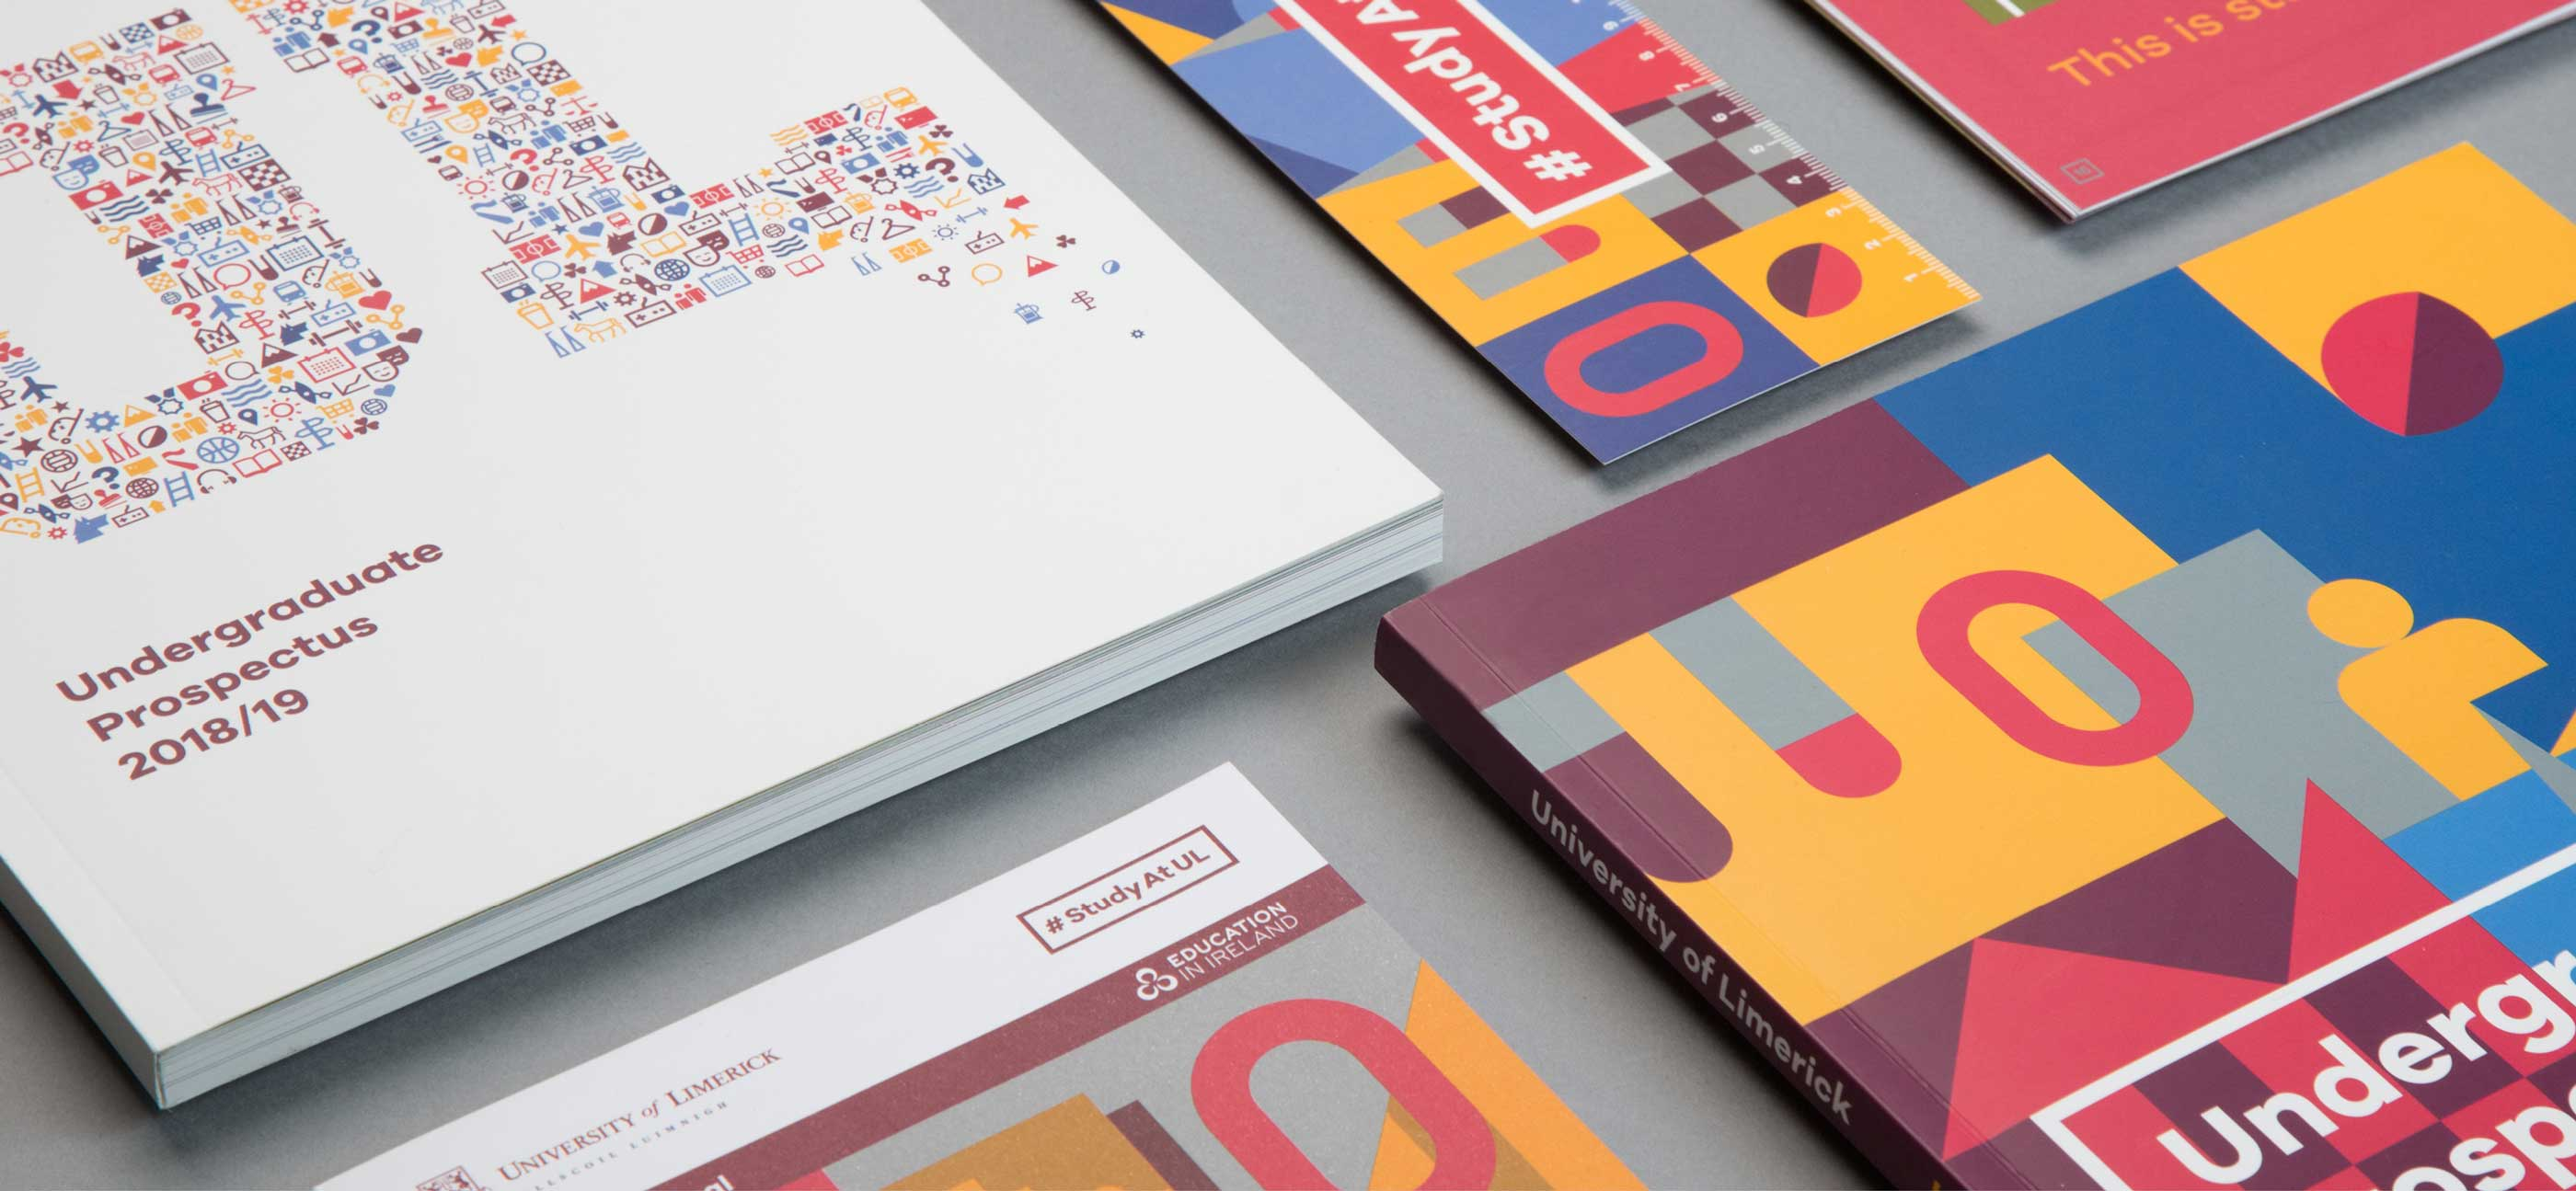 Various UL Undergrad brochures featuring new recruitment brand identity